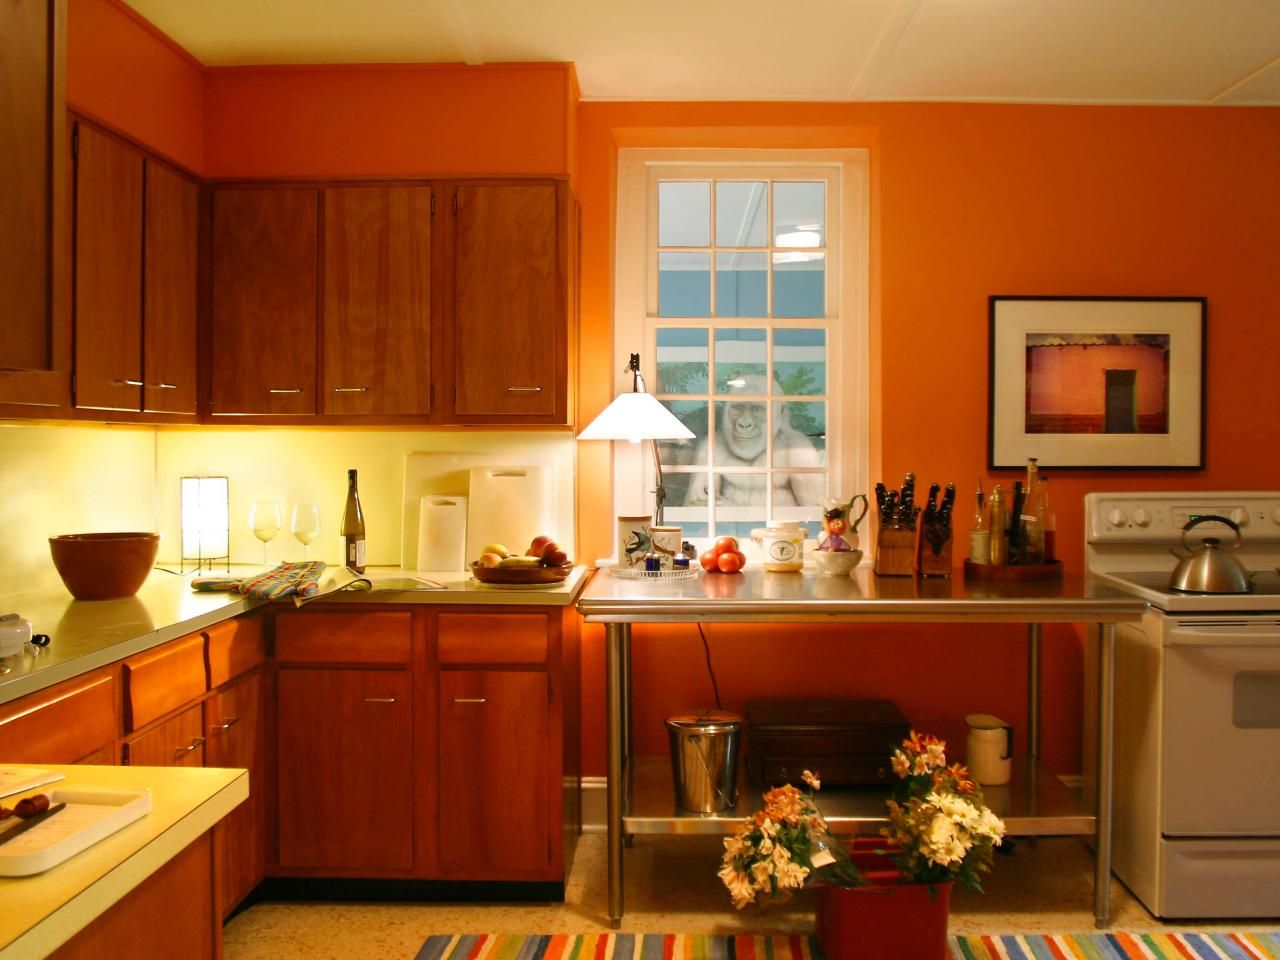 Cheap kitchen cabinets pictures options tips ideas hgtv for Cheap kitchen cabinets